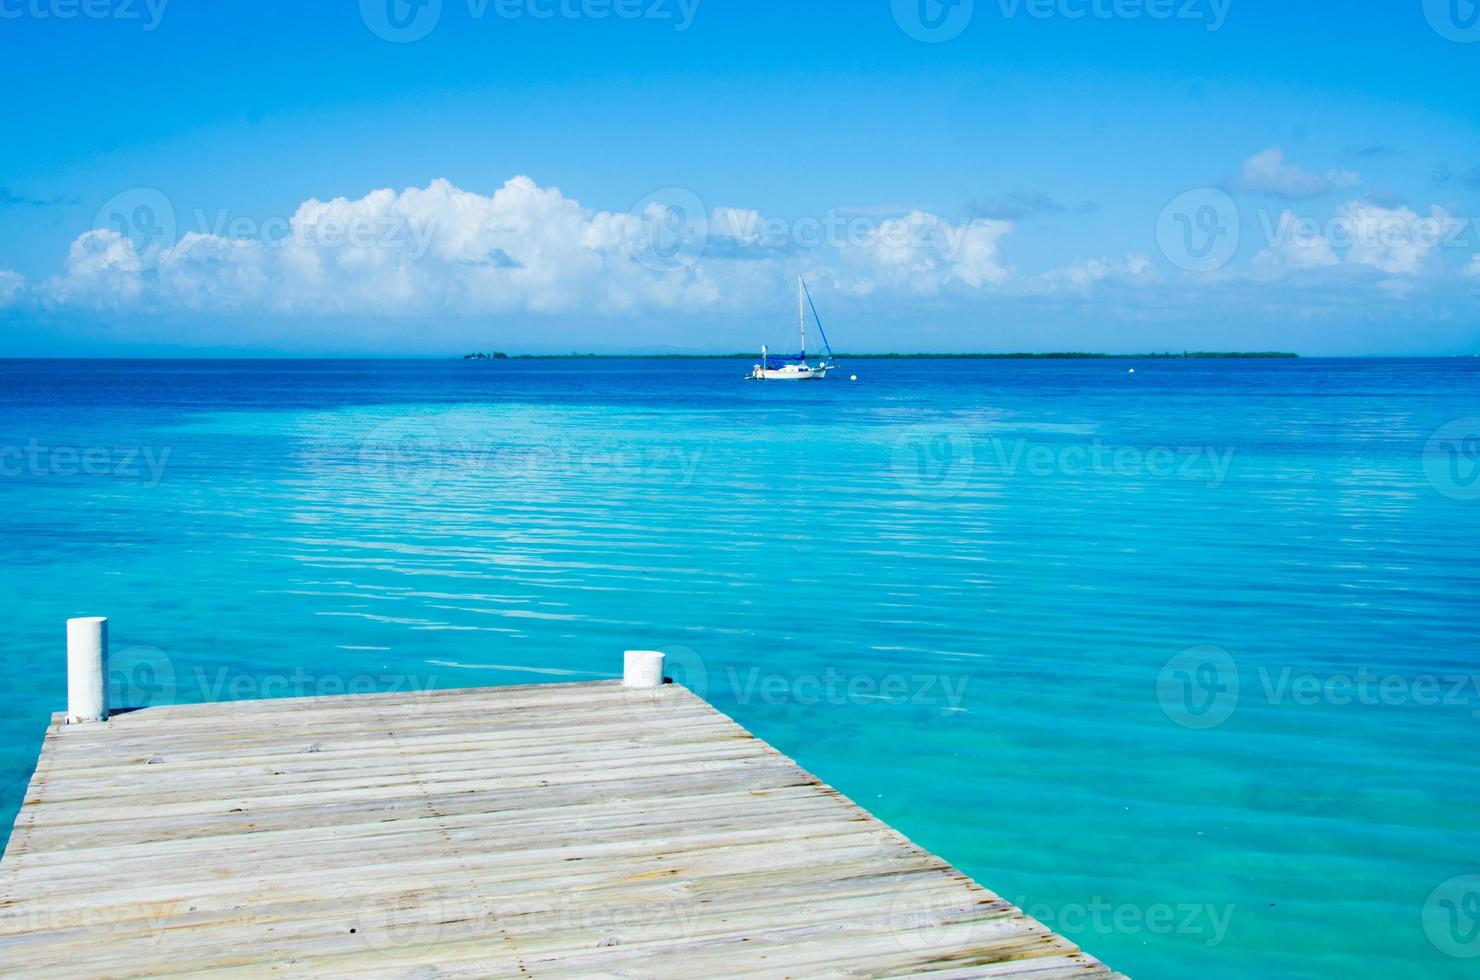 Meditation and relaxing on Pier photo